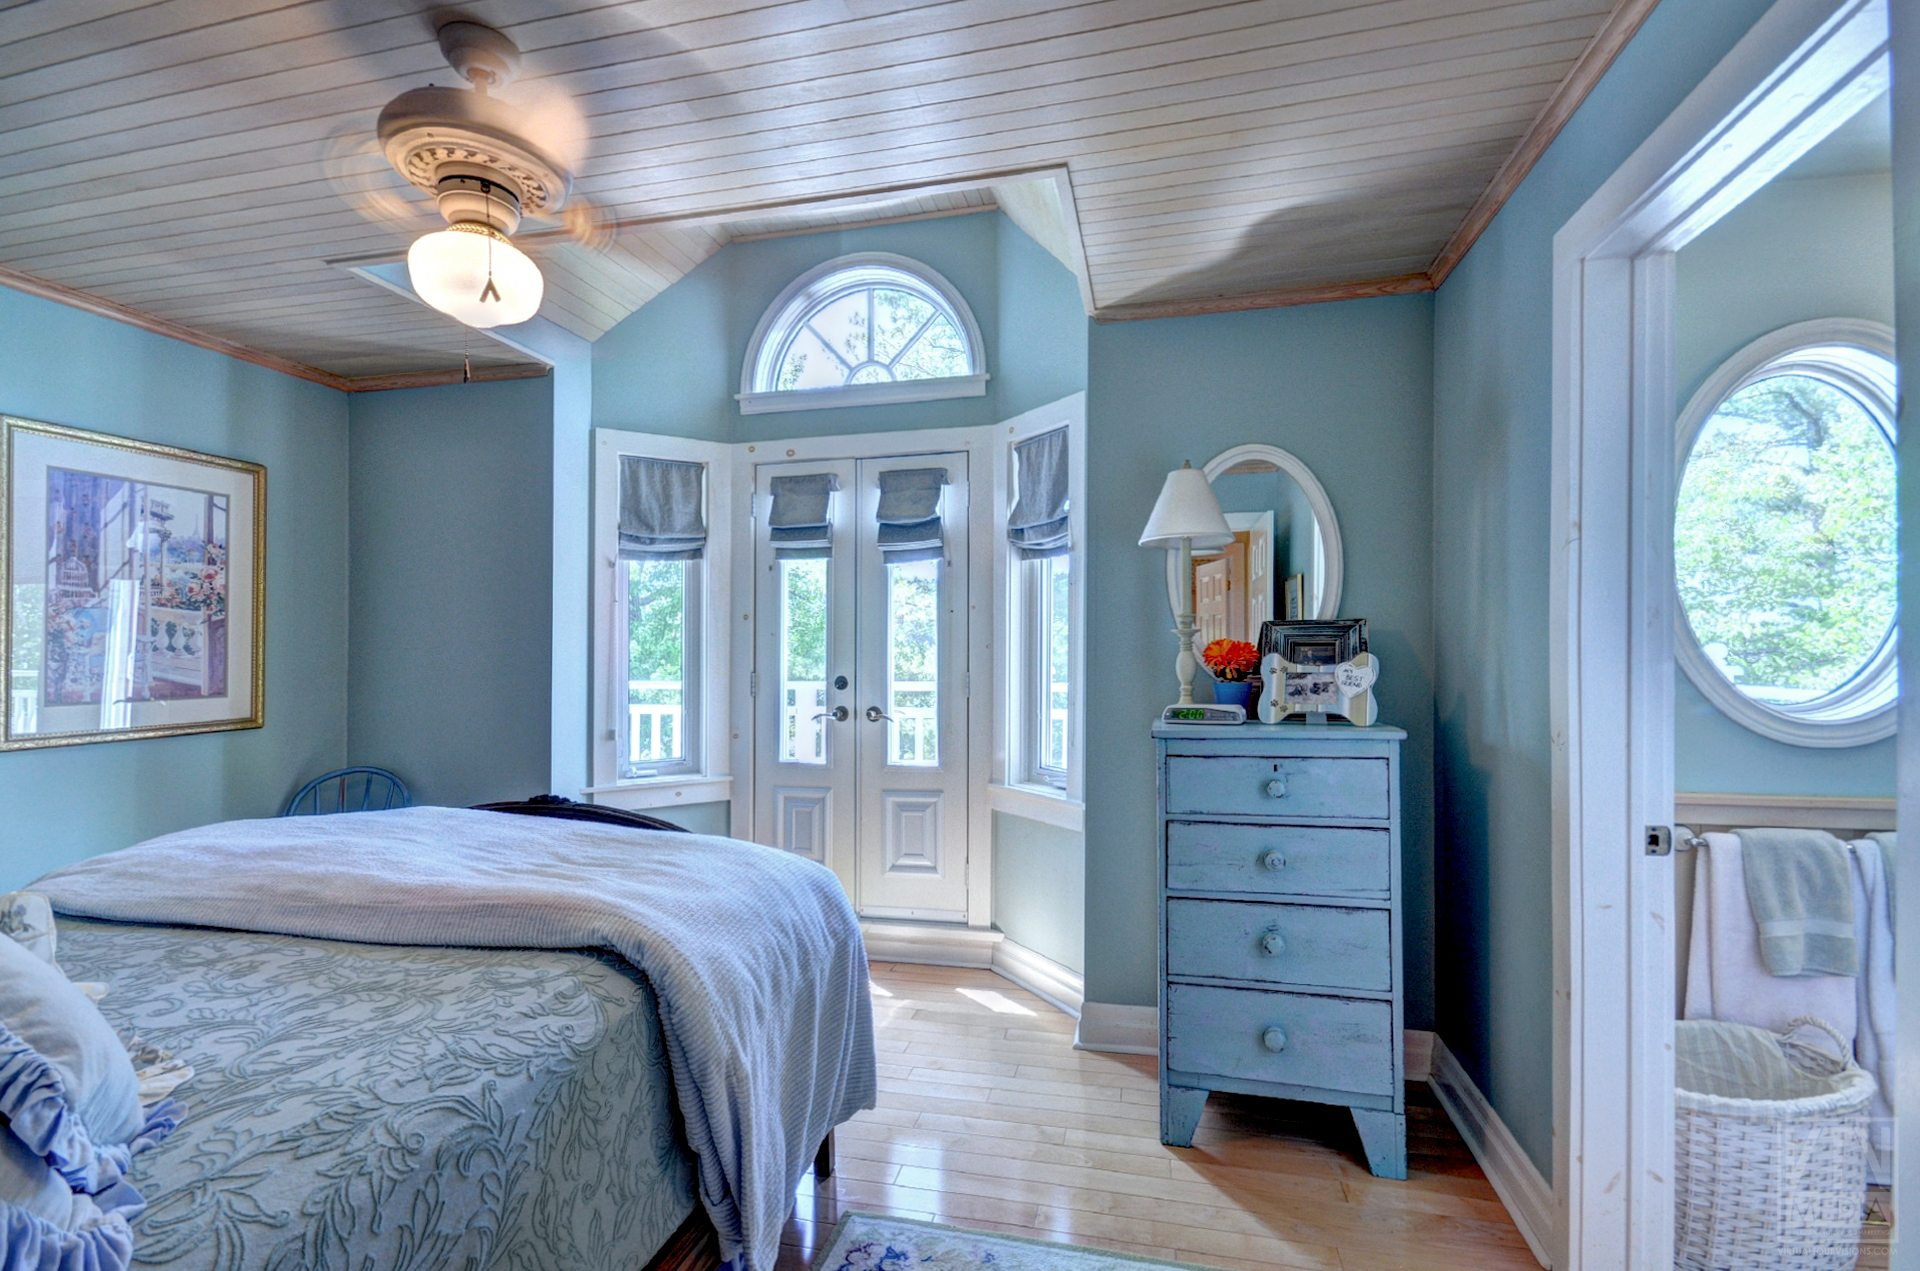 milford-bay-cottage-for-sale-1022-milford-manor-road-6